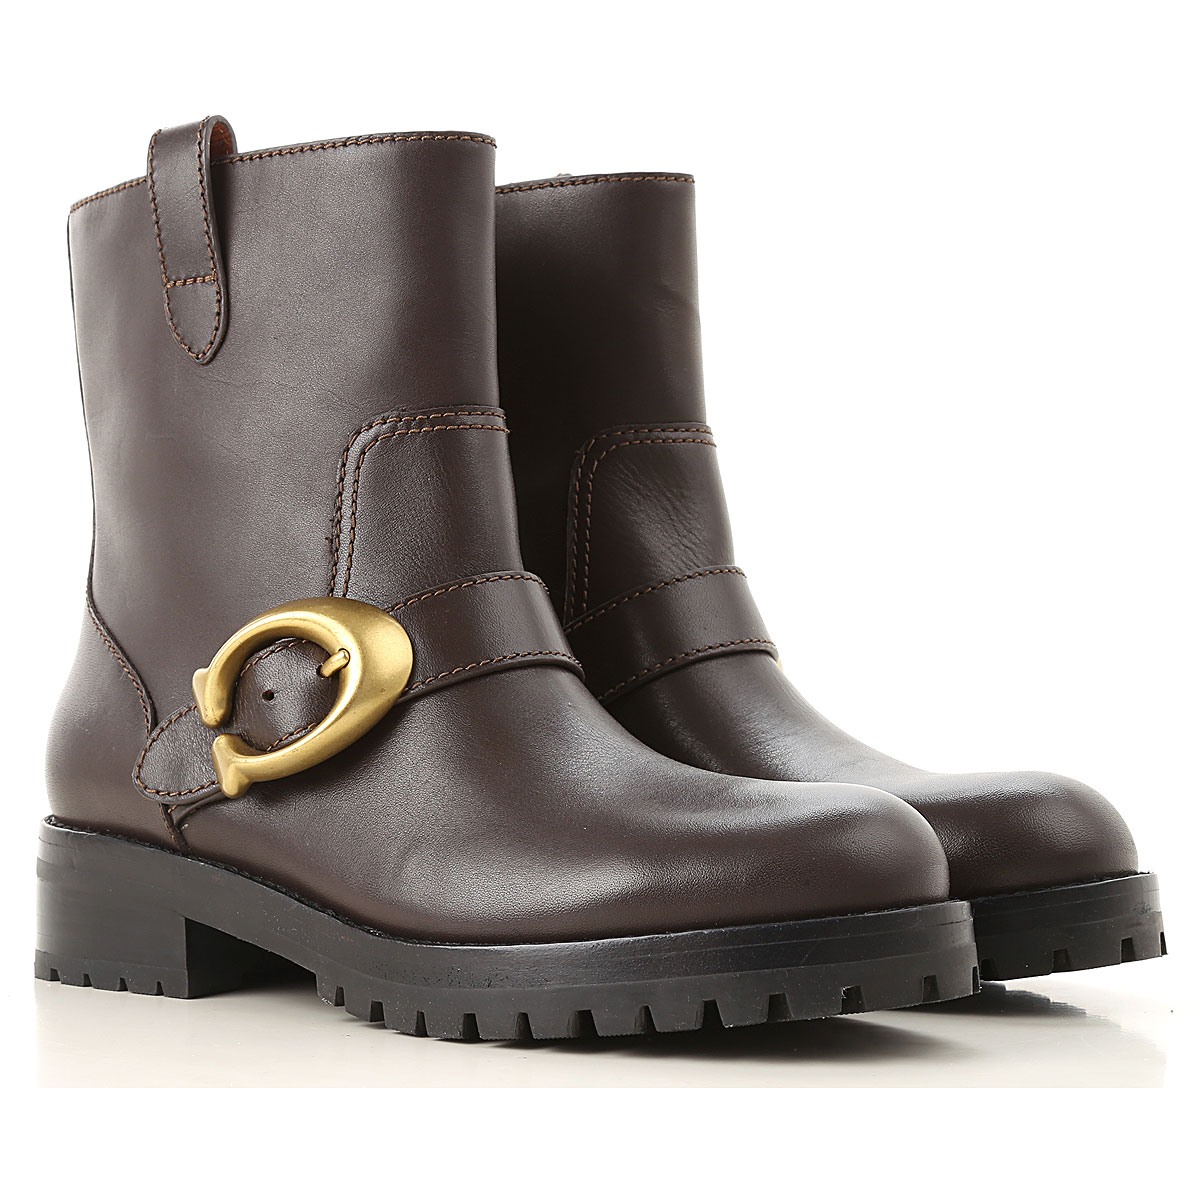 Image of Coach Boots for Women, Booties, Brown, Leather, 2017, 10 6 6.5 7 8 8.5 9 9.5